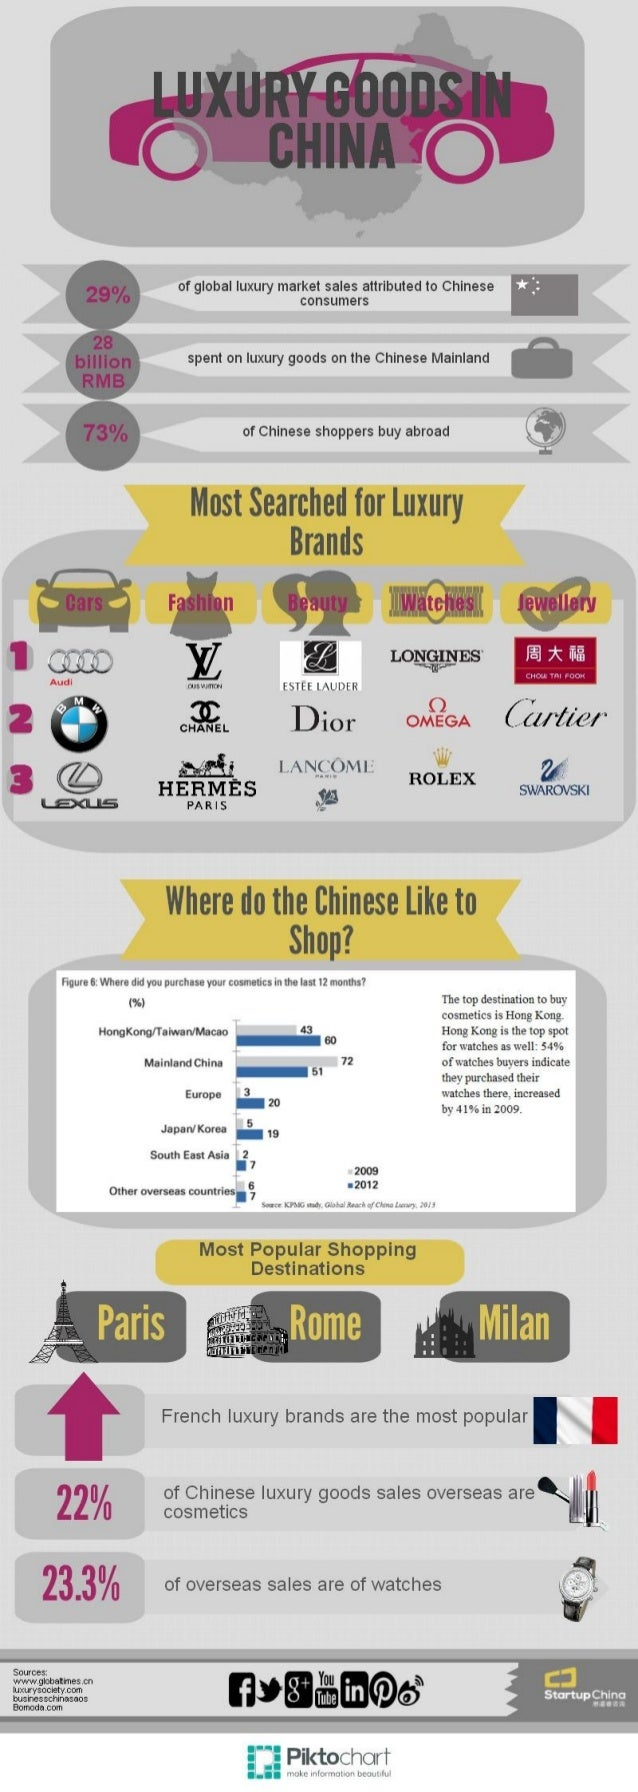 Luxury Goods in China